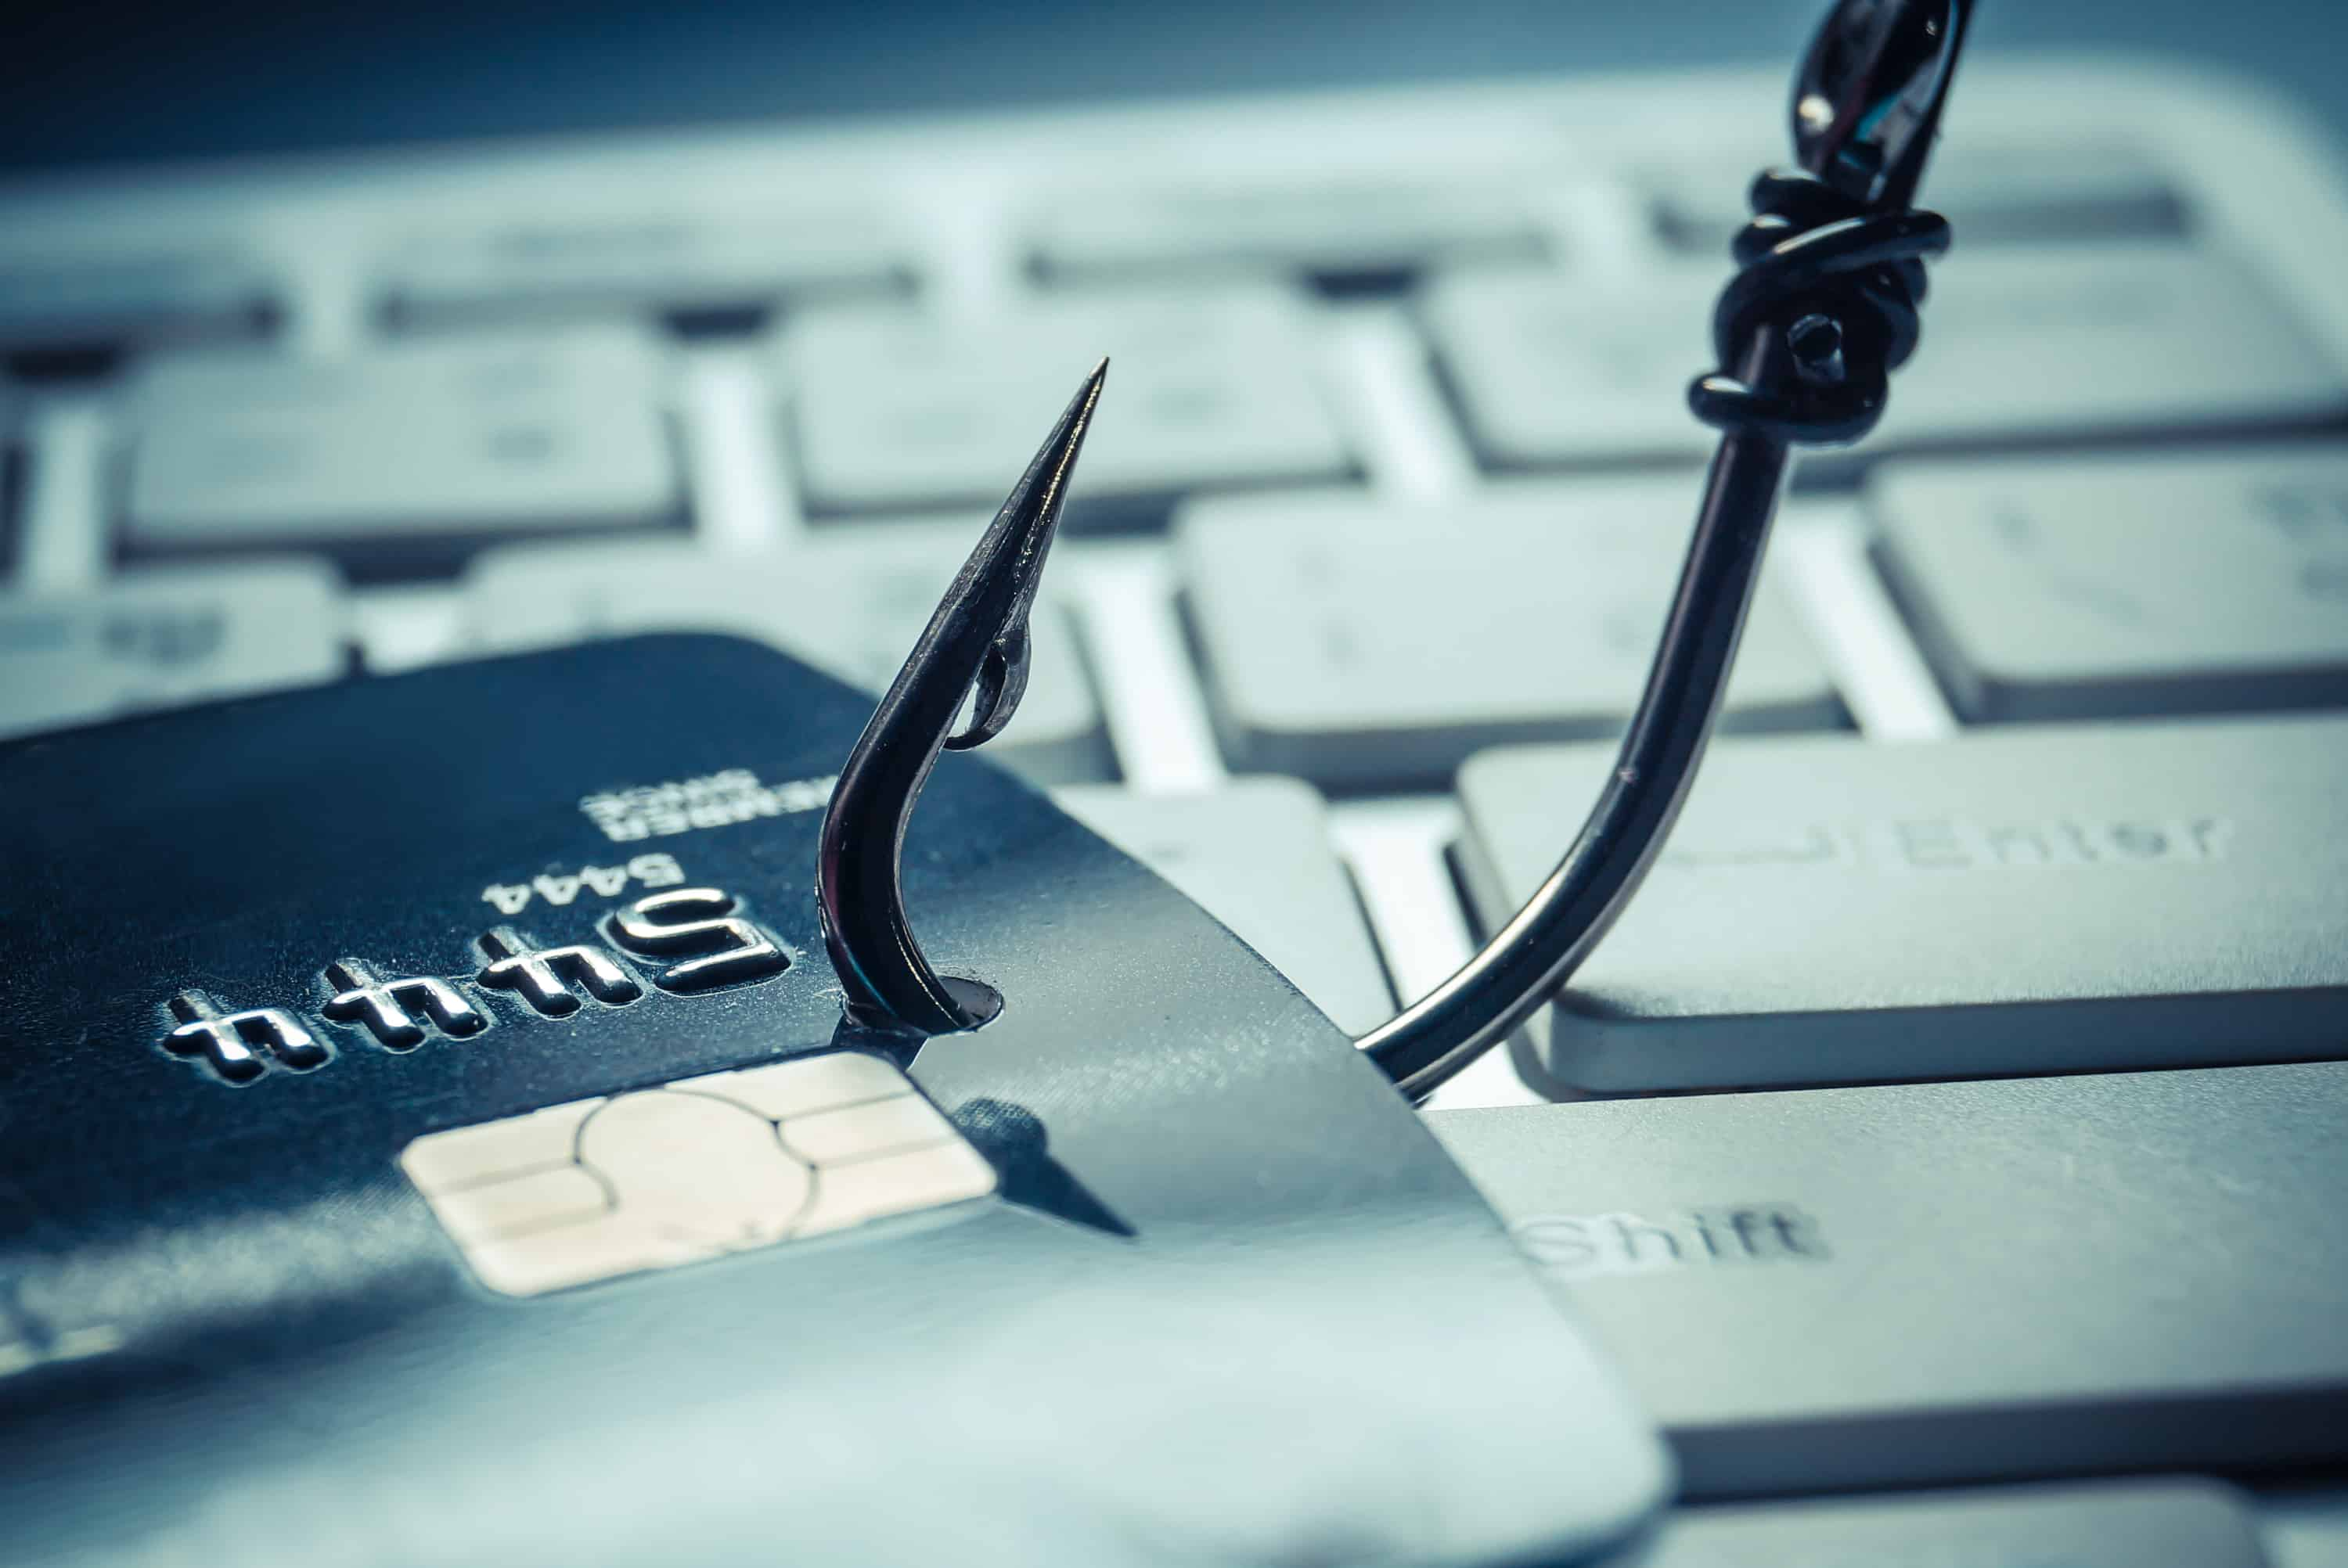 Phishing scam symbolized by a fishing hook put through a credit card sitting on a computer keyboard.